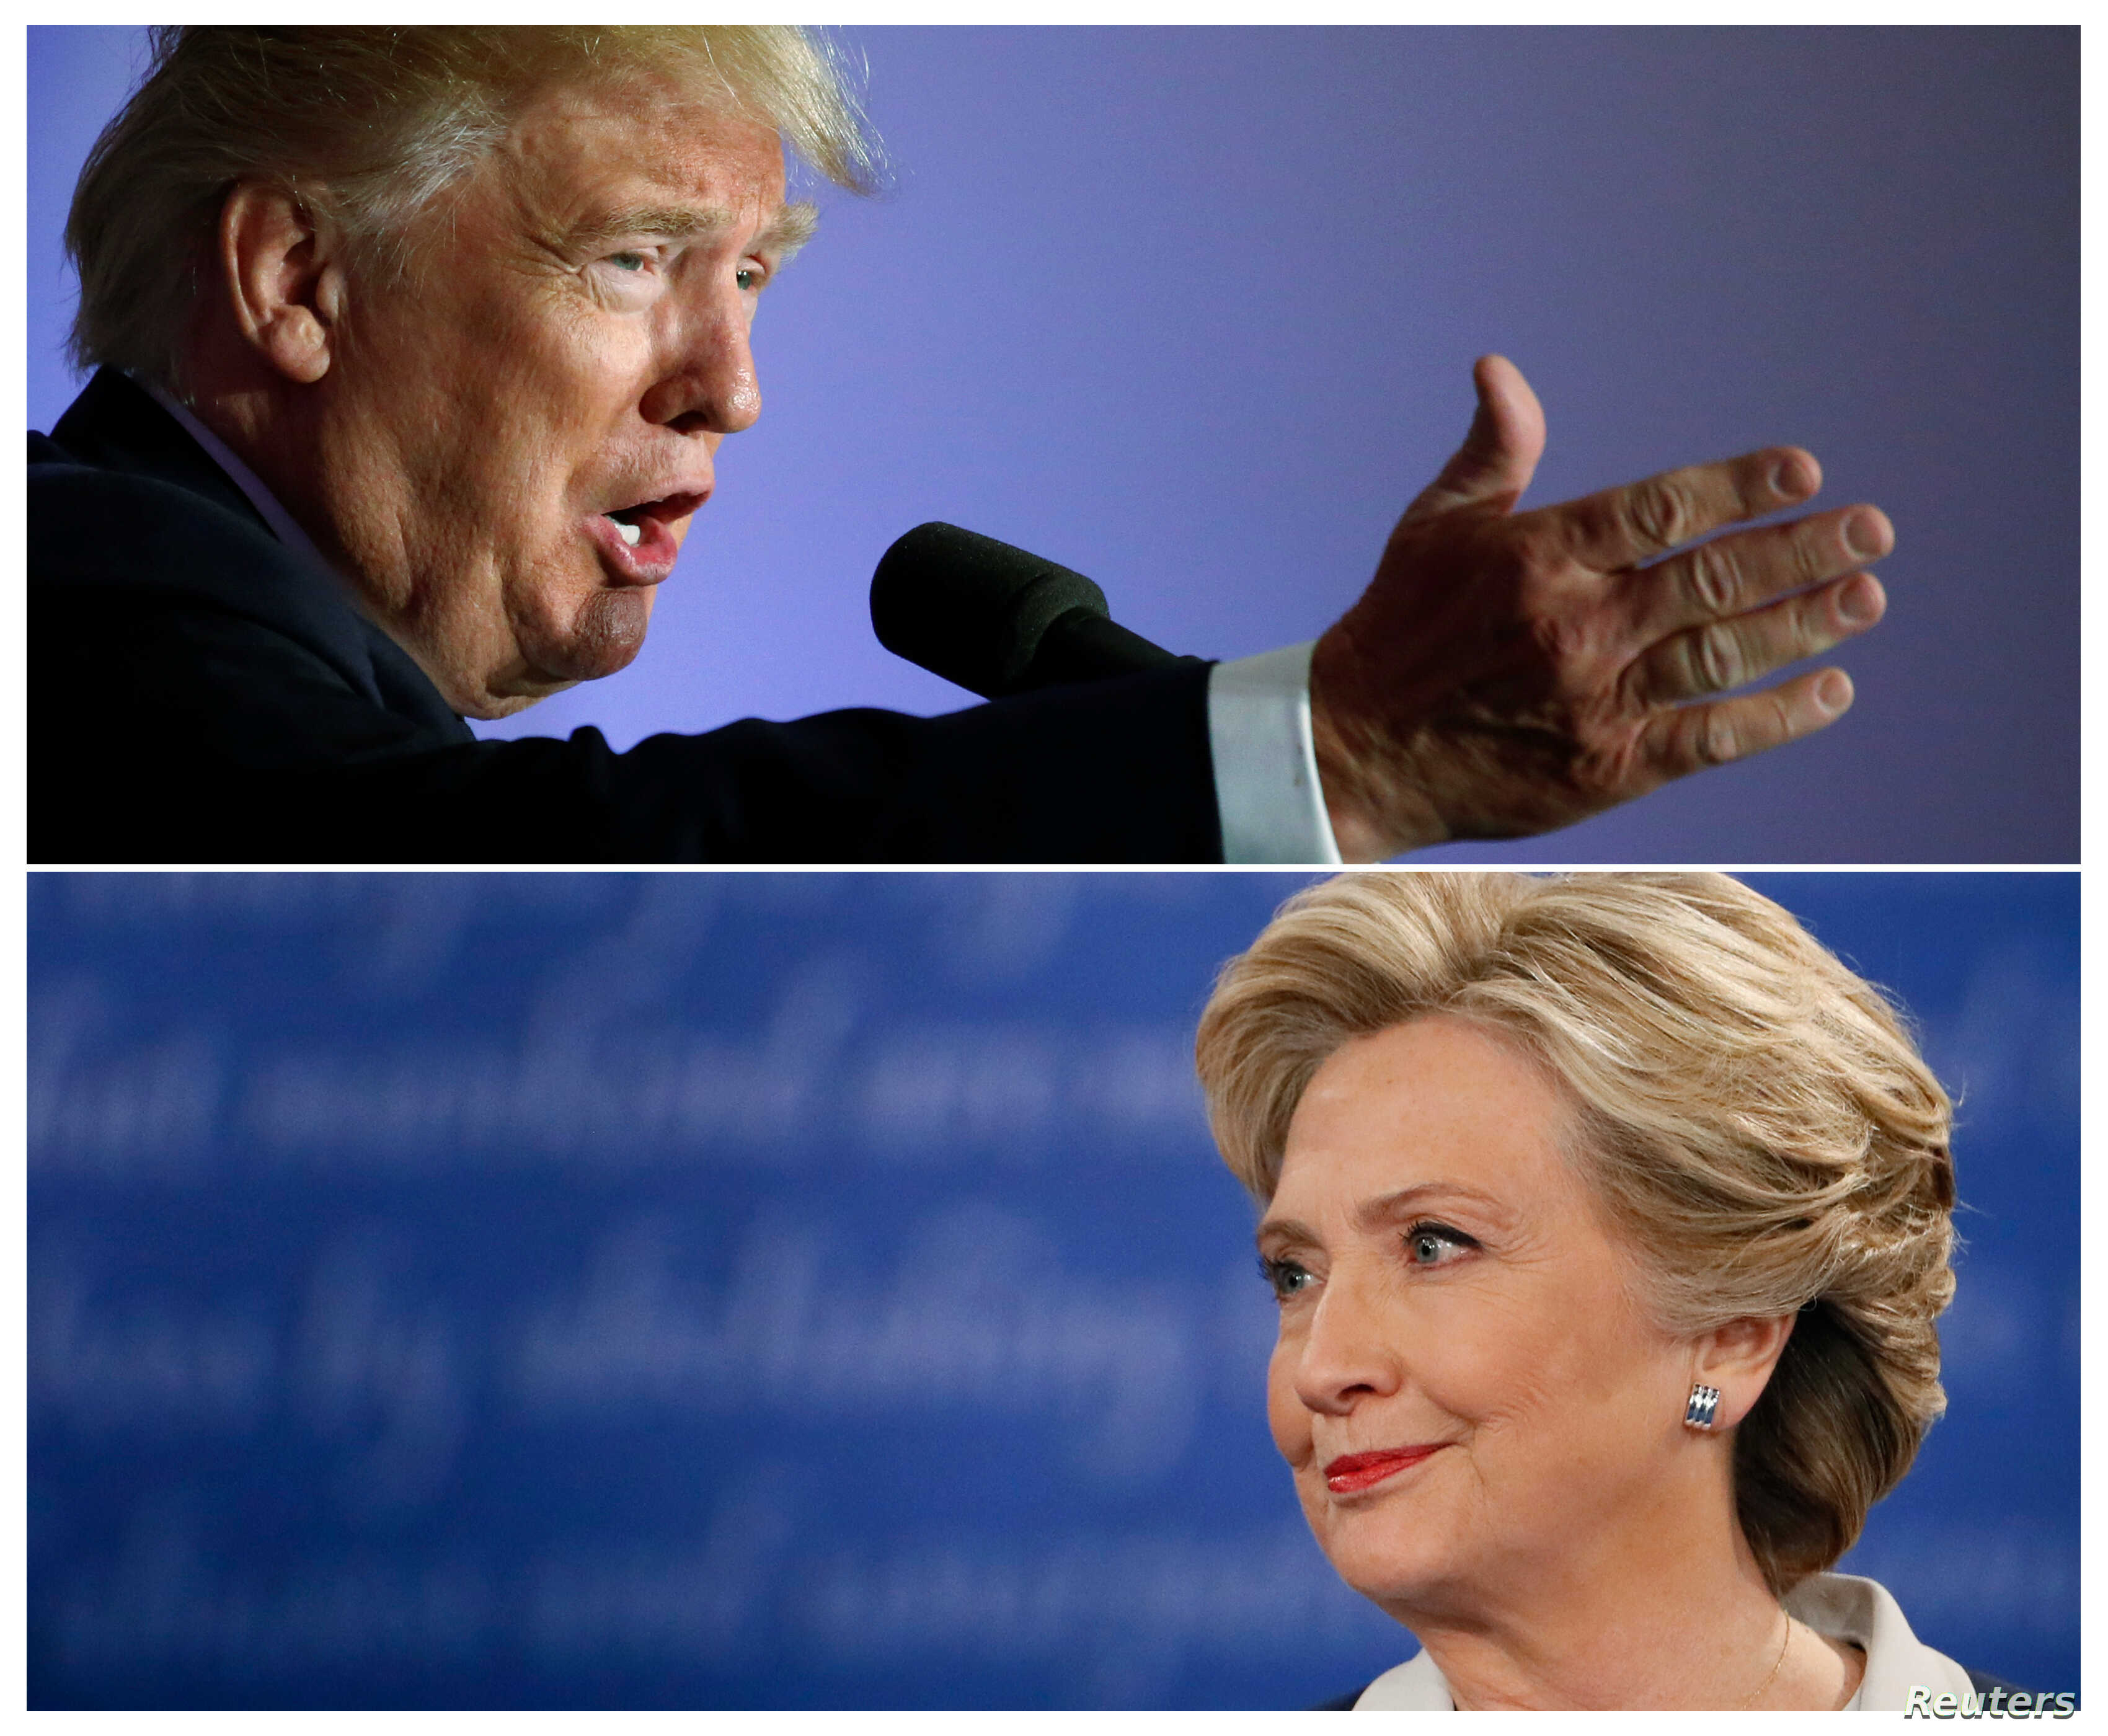 U.S. presidential candidate Donald Trump (top) speaks at a campaign event, in Washington, D.C., Oct. 26 2016 and Hillary Clinton listens during their town hall debate  in St. Louis, Missouri, Oct. 9, 2016, in a combination of file photos.